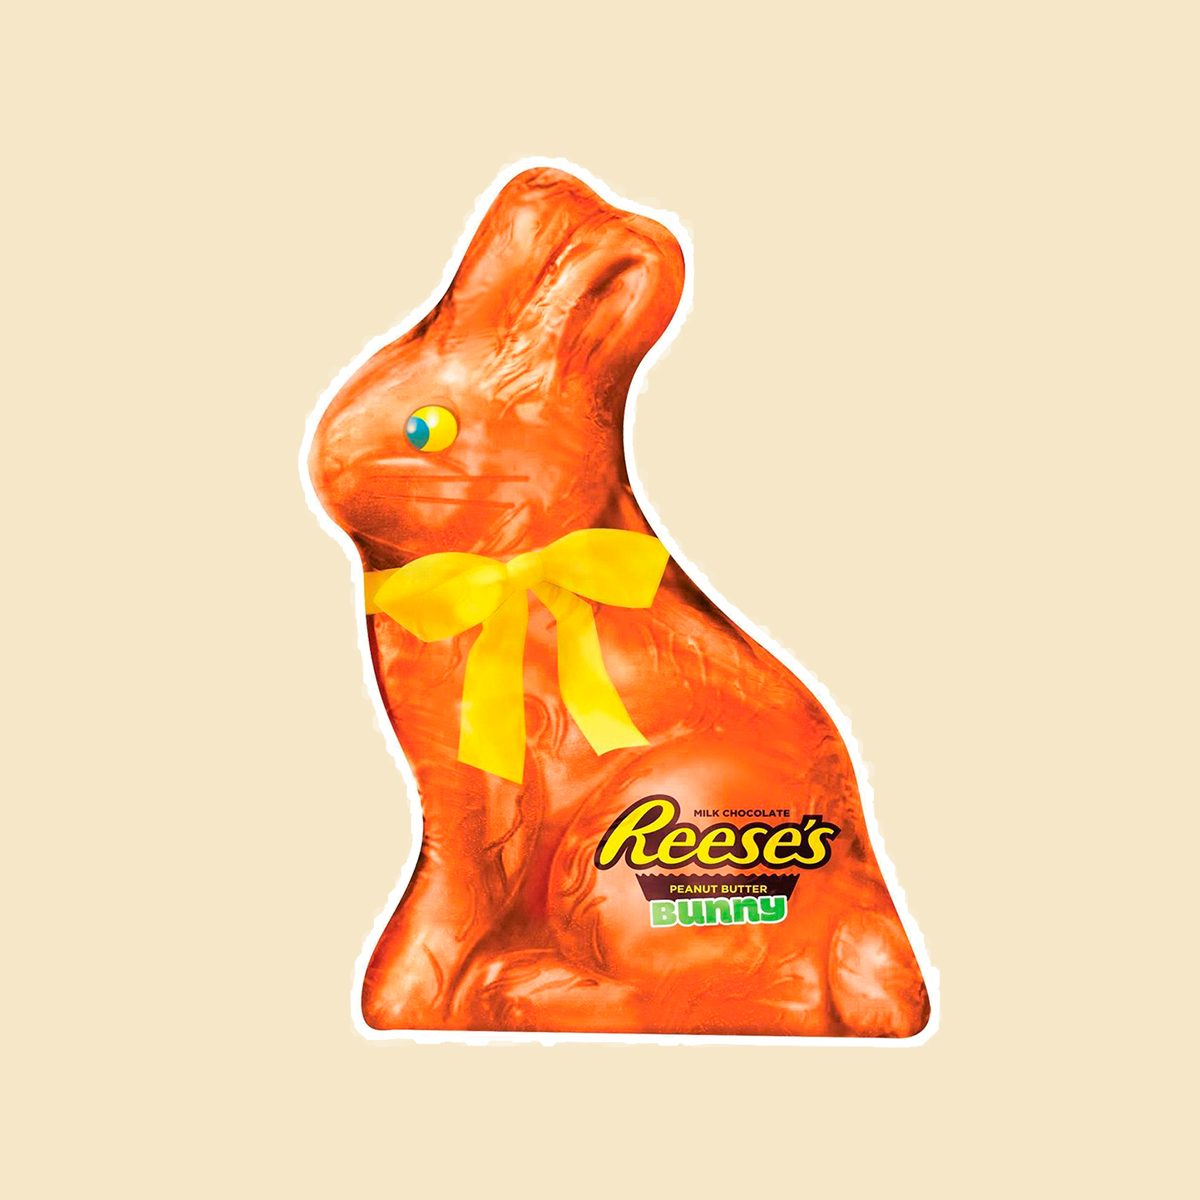 Reese's Peanut Butter Bunny Unboxed